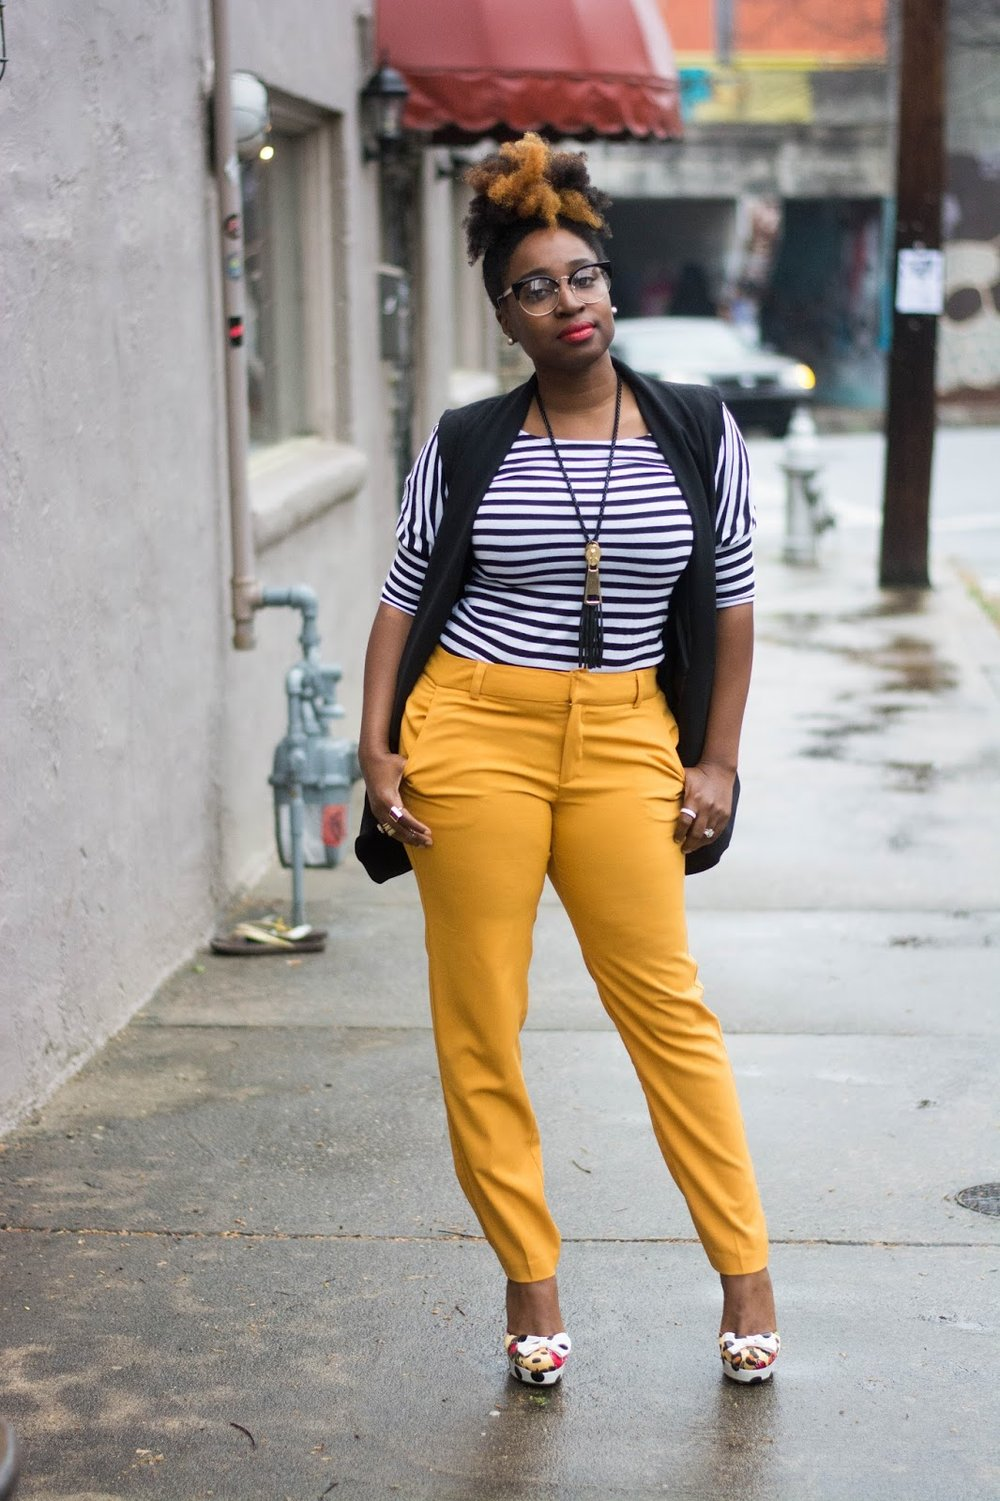 Atlanta Stylist, Atlanta blogger, Style blogger, Atlanta street style, Street style, Black bloggers, Mustard Pants, Striped shirt, Black vest, Forever21, Atlanta Fashion, Mixed prints, Thrifted fashion, Black girls killing it, Fashion blogger, Natural hair fashion, Black girls rock, Naturals Rock, What to wear to work, Workwear